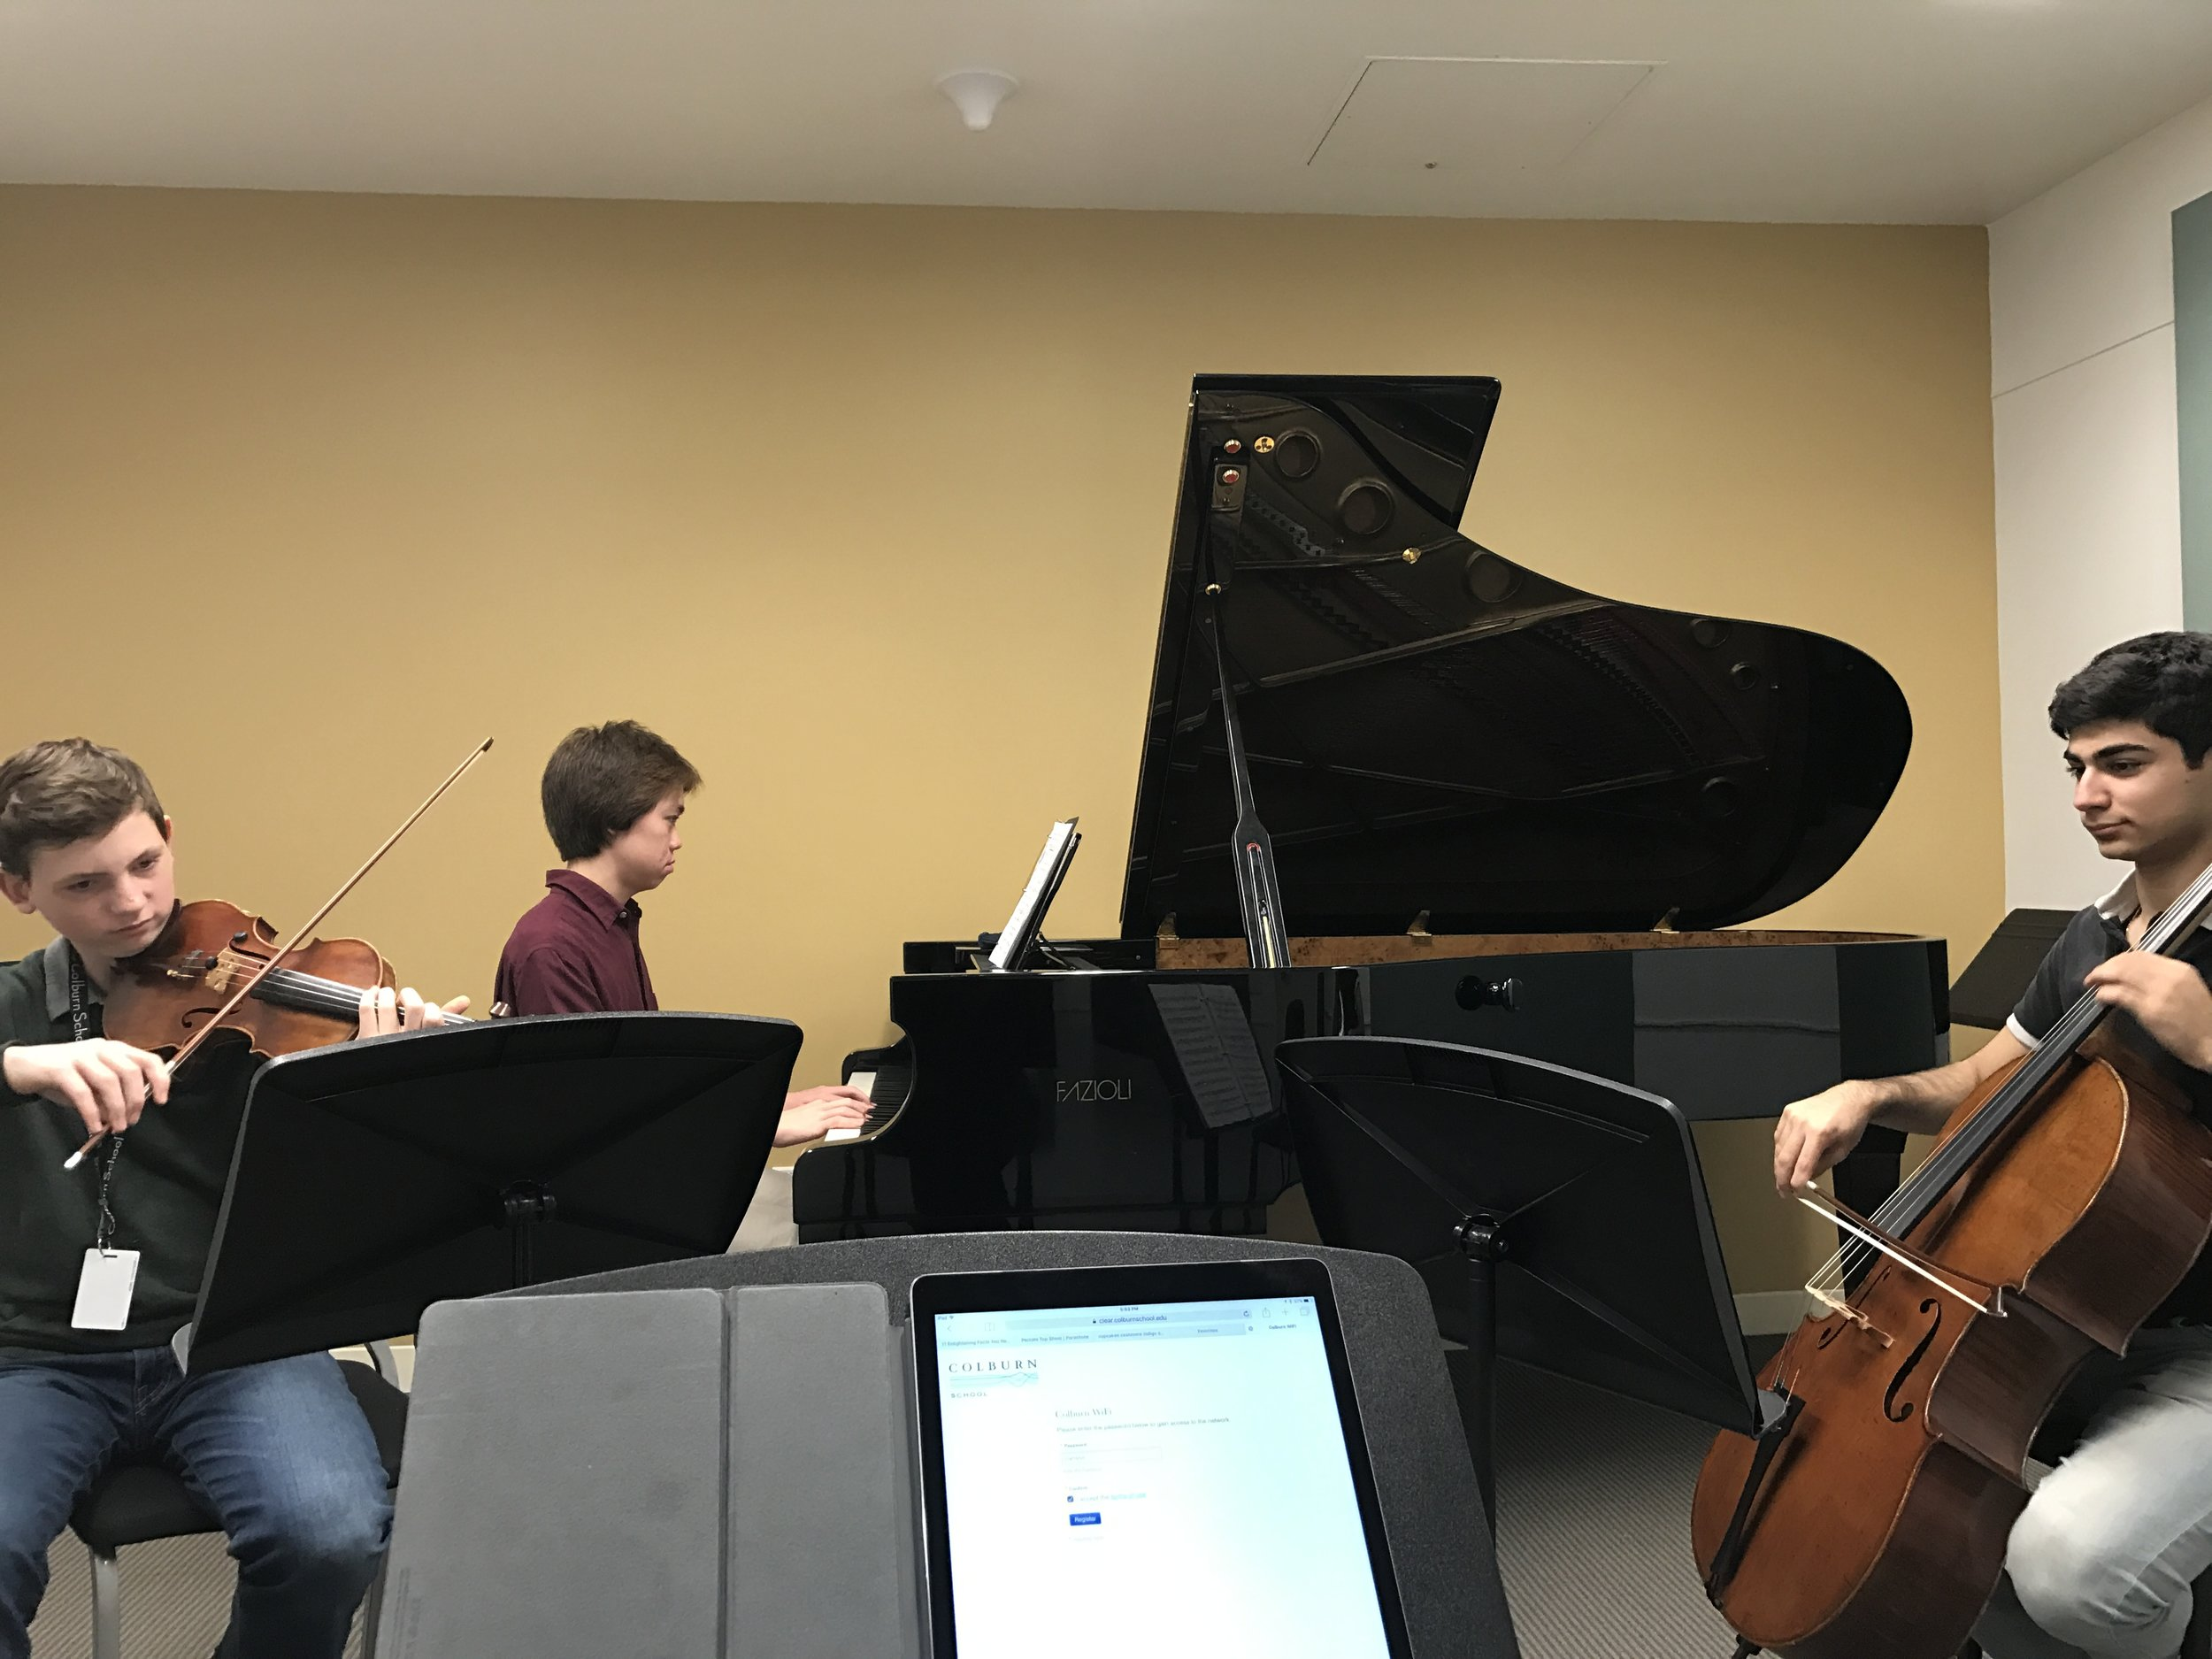 In the trenches with my honors piano trio at colburn. (This gifted and precocious group is also participating in sounds promising.)